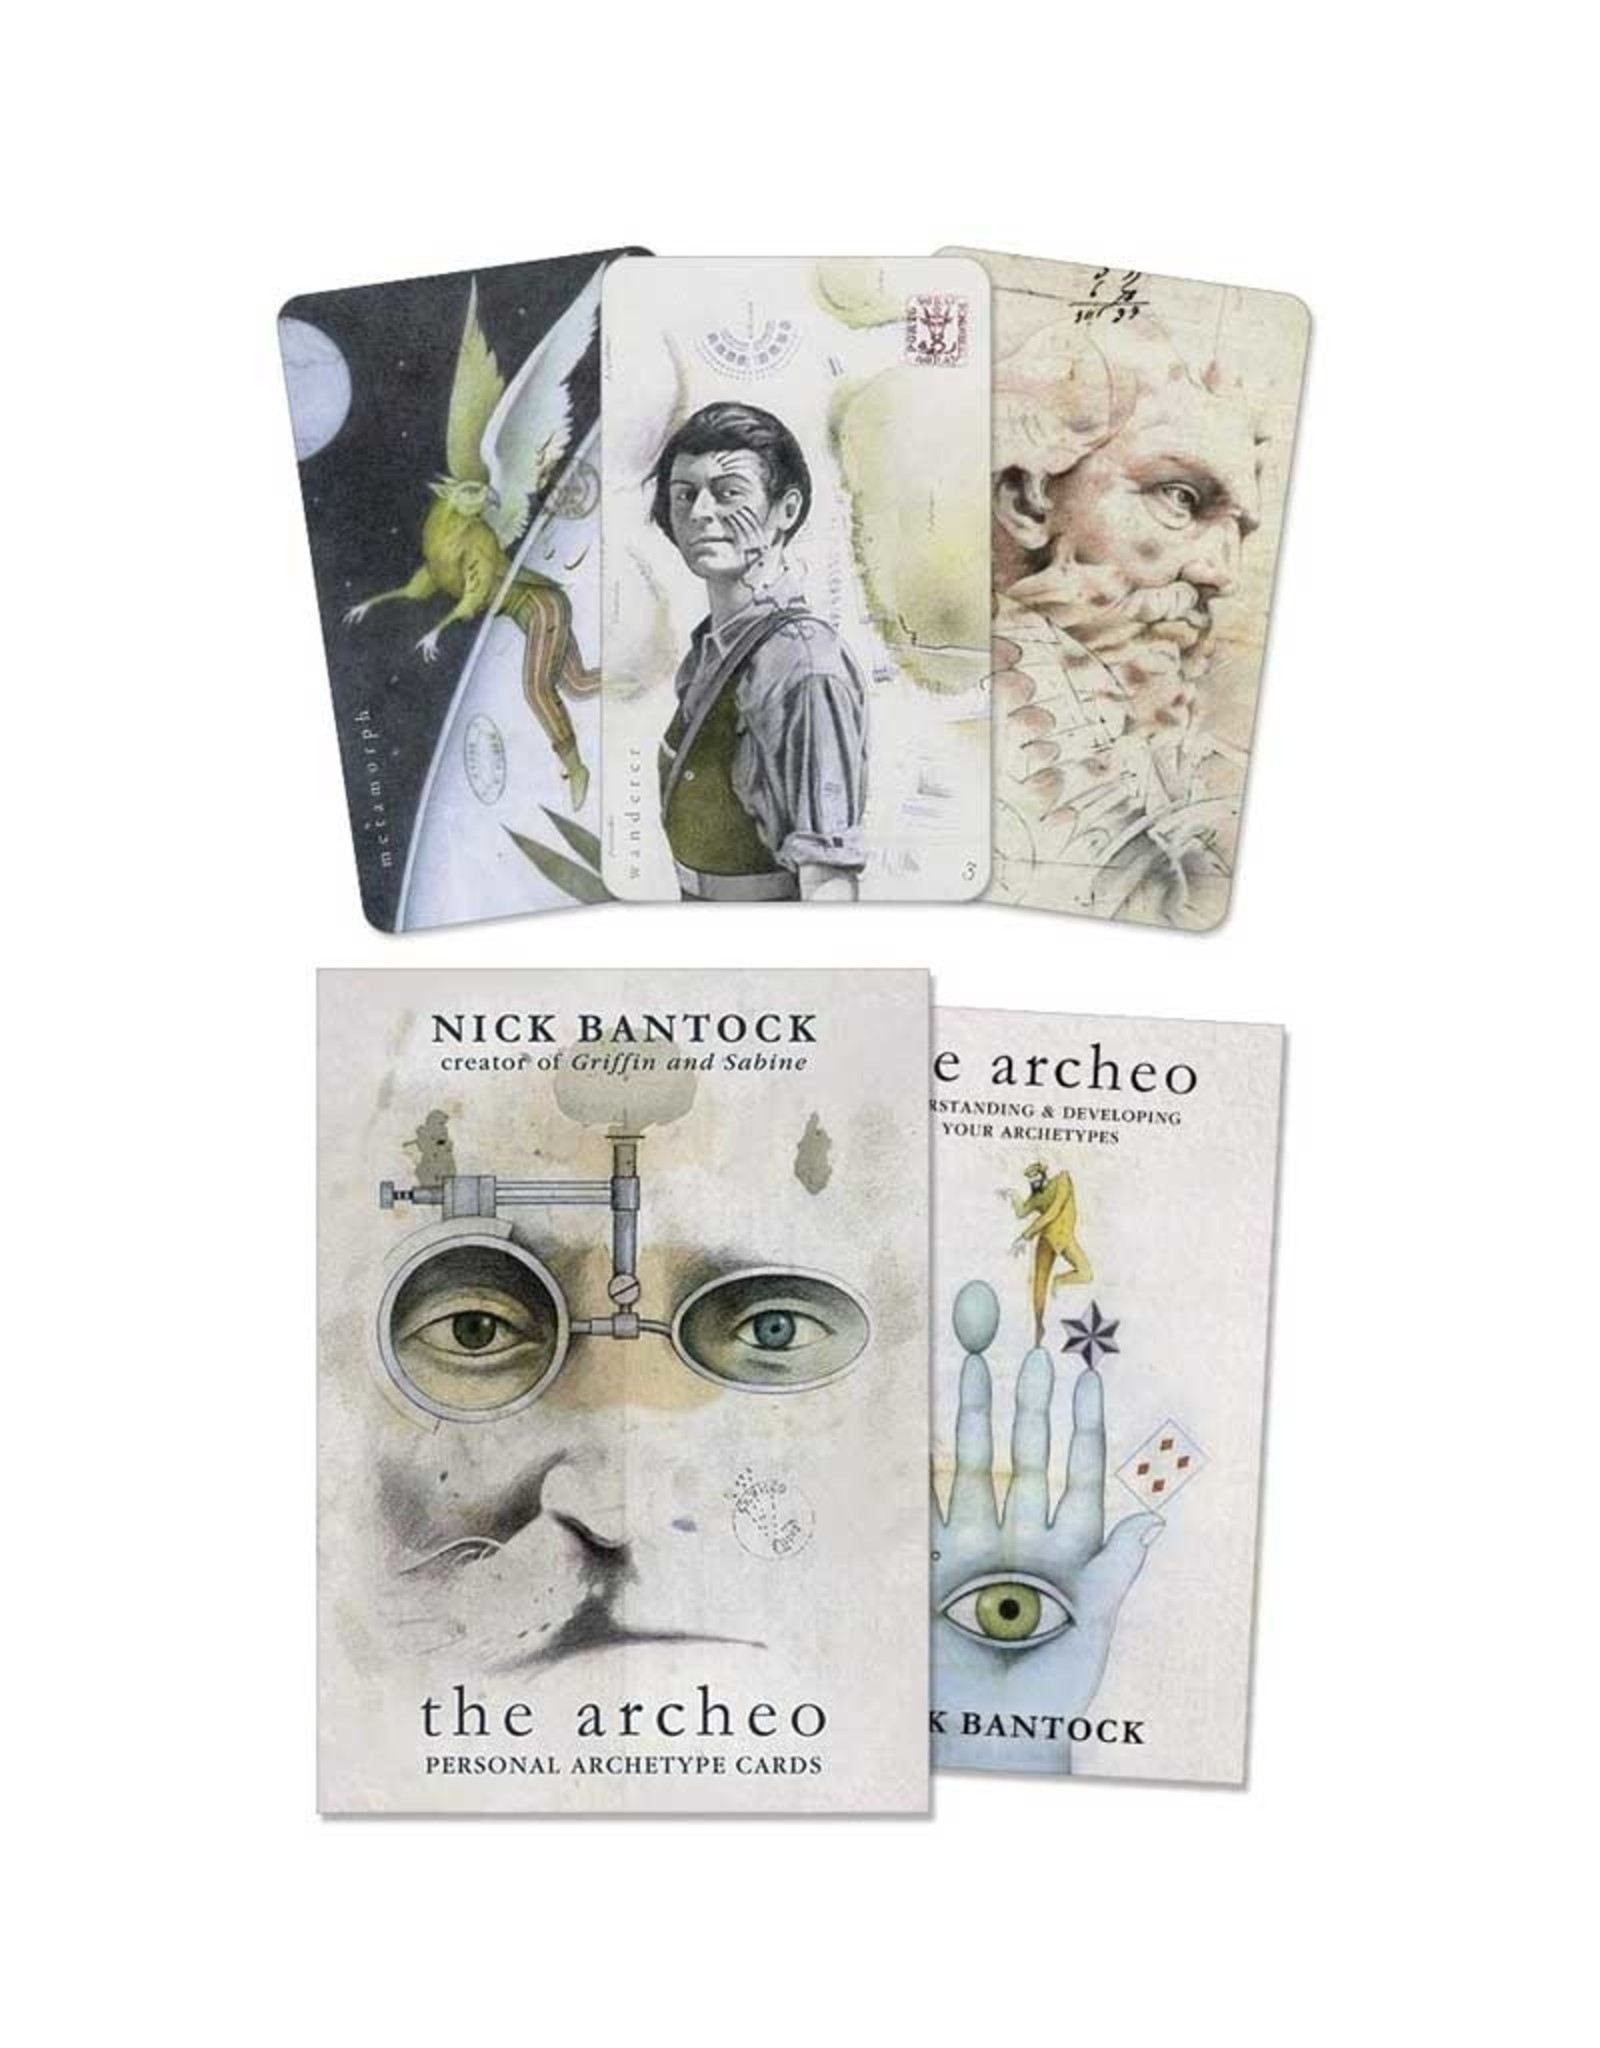 Archeo Archetype Oracle Cards by Nick Hantock